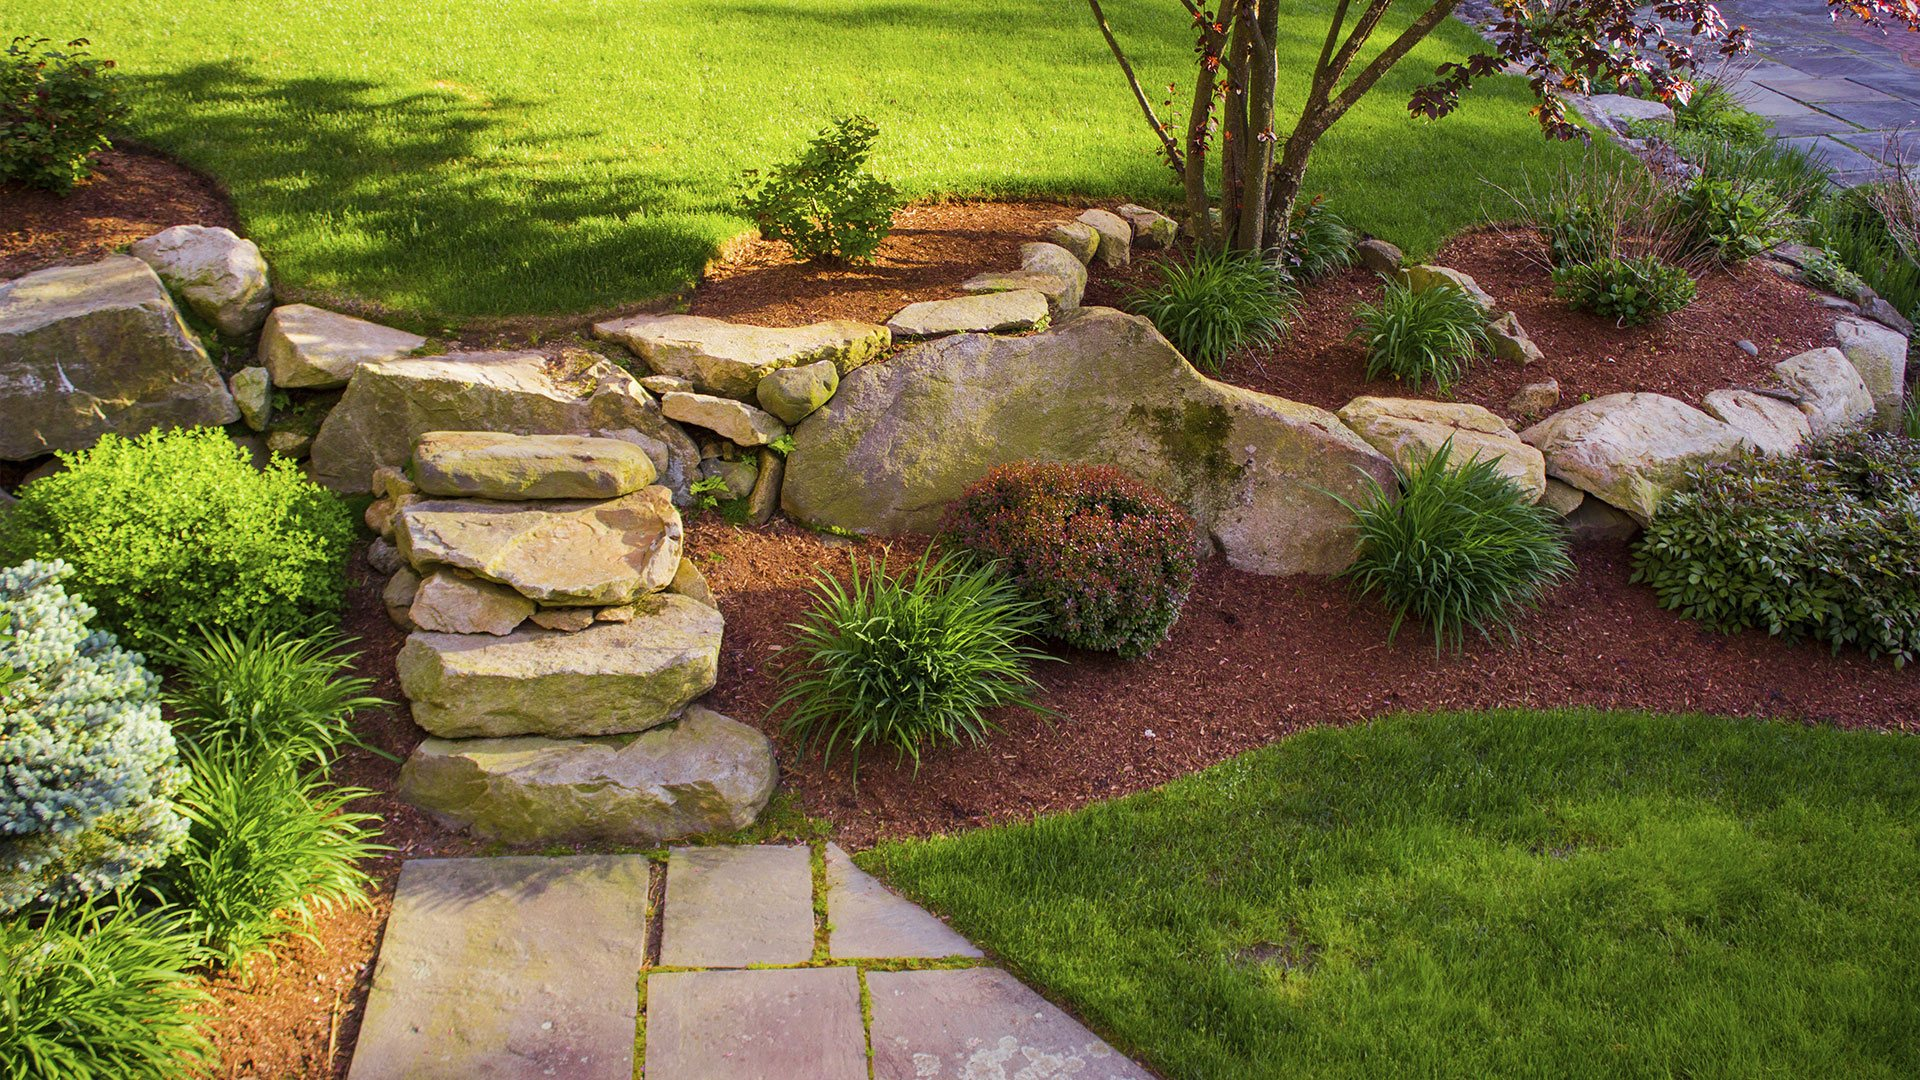 Design Landscaping Pics landscaper lawn care and tree service in kennesaw marietta acworth no limit landscaping slide 3